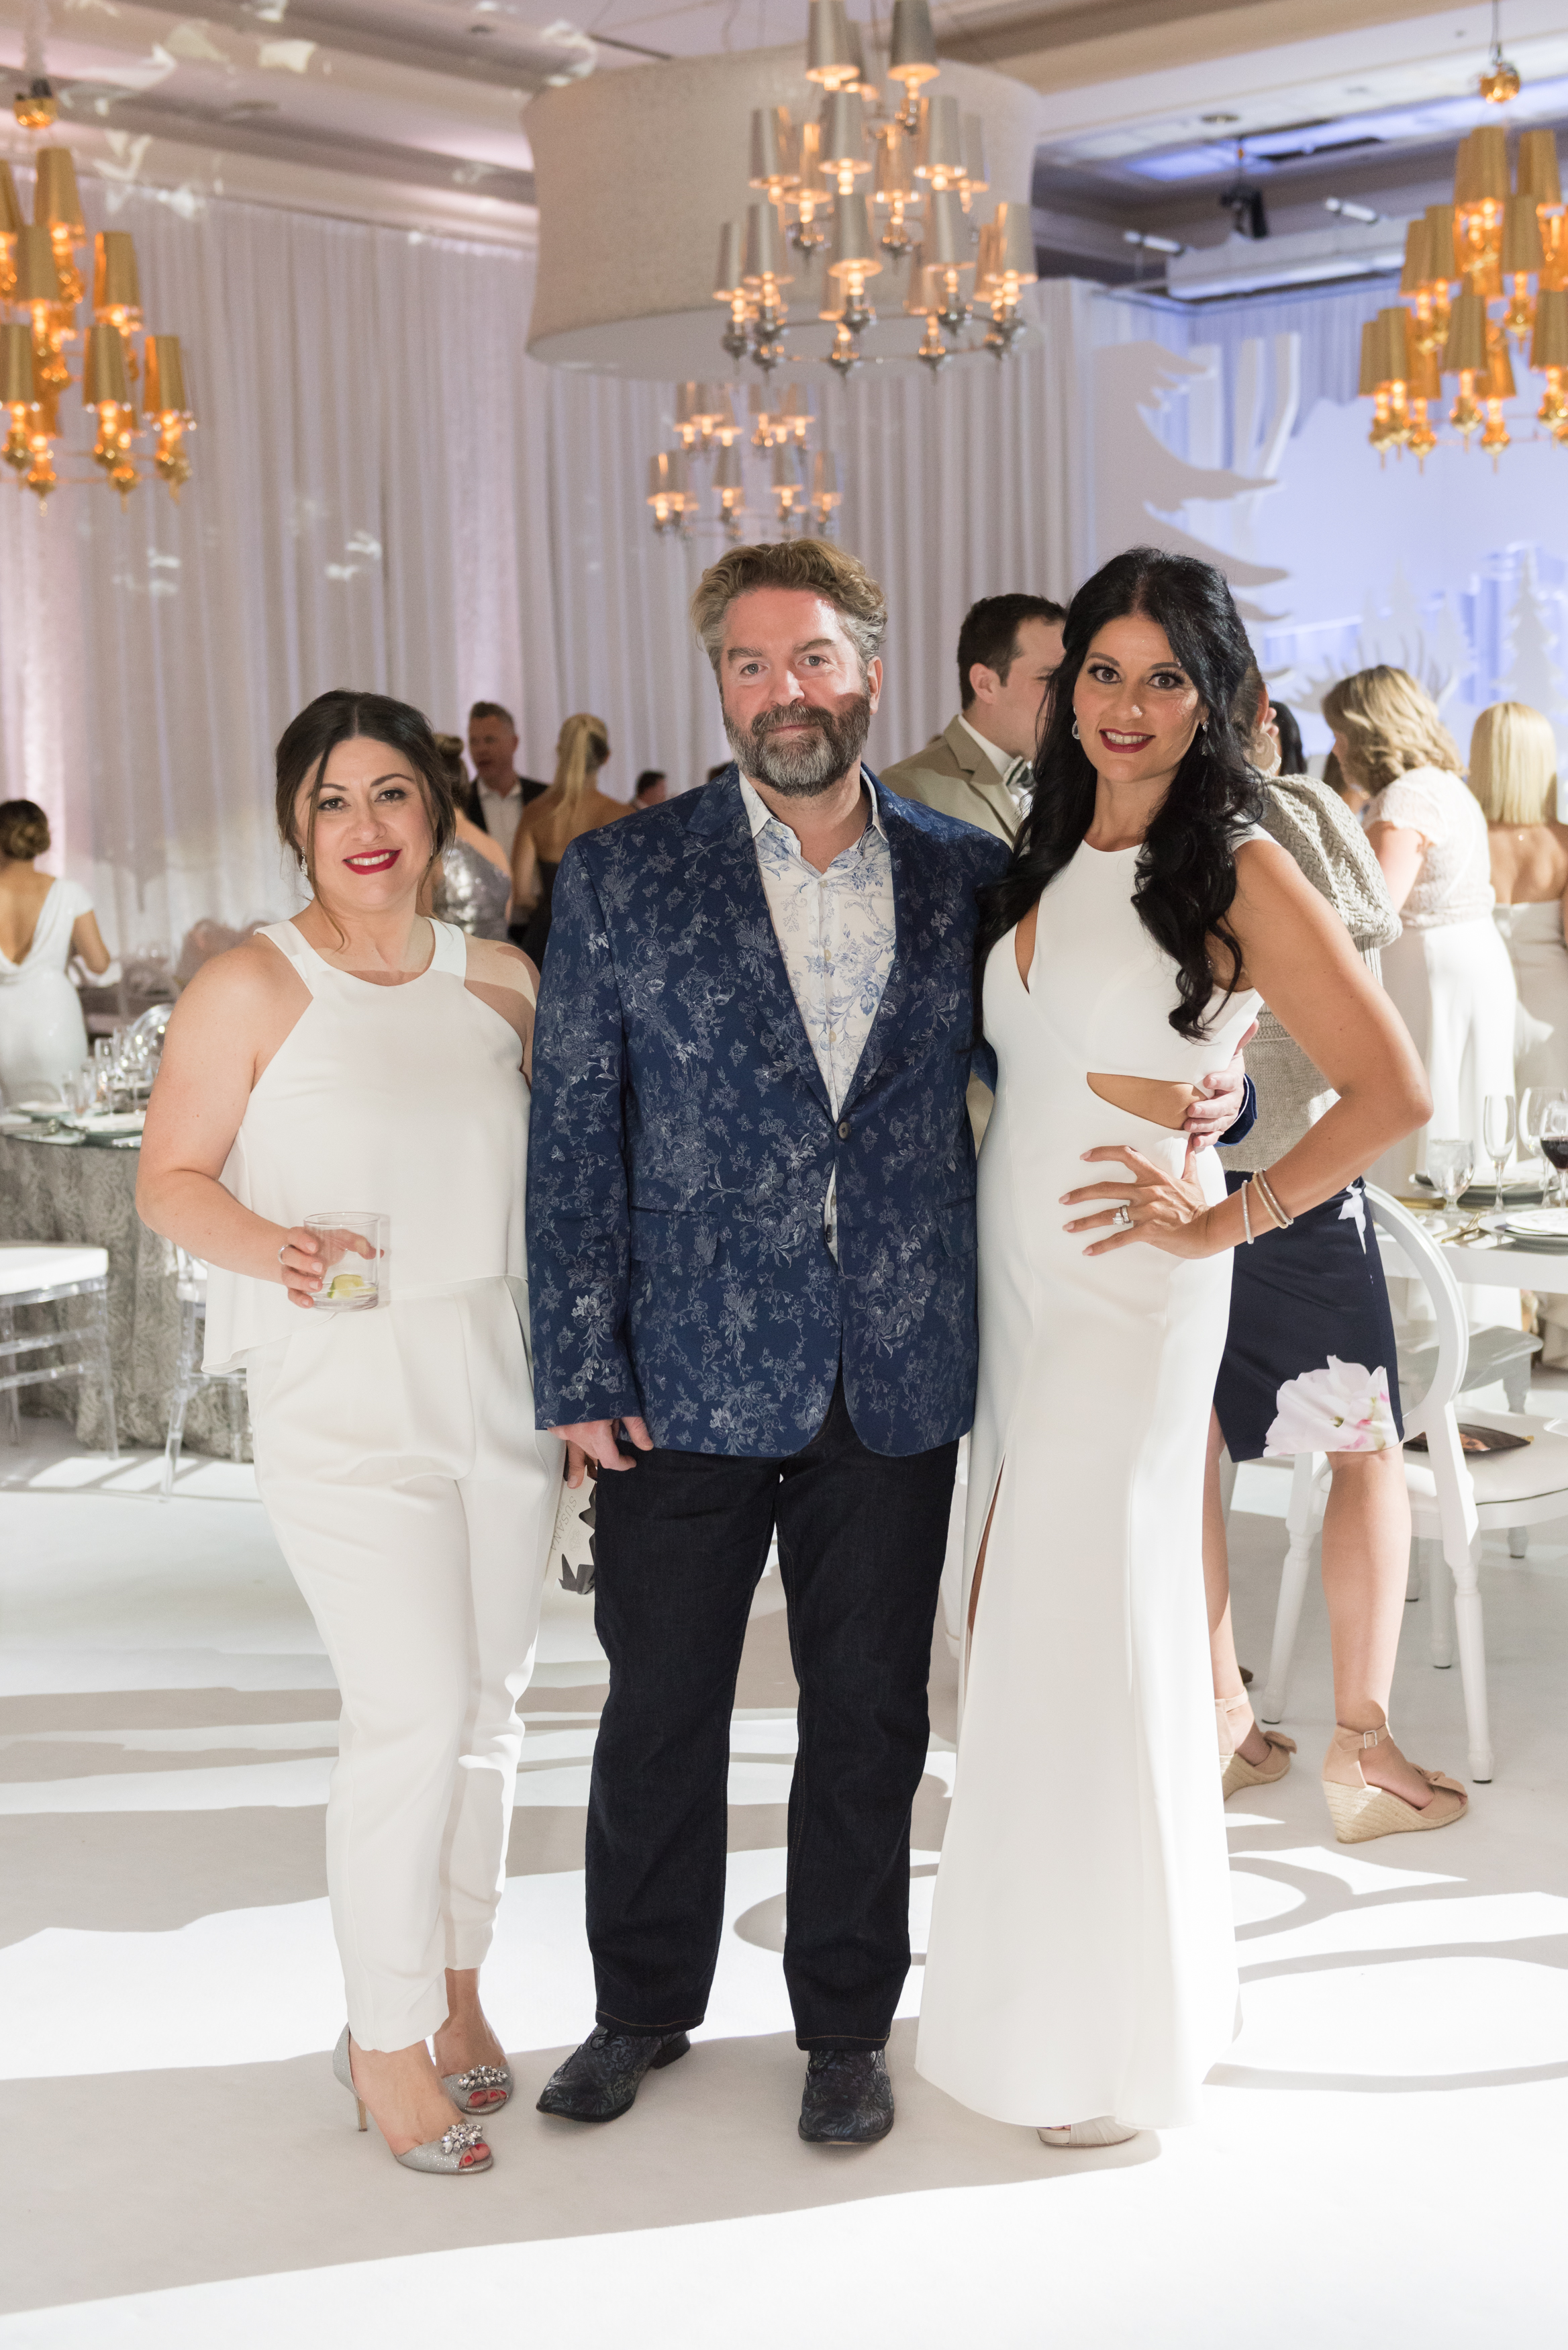 With my travel bestie Susana Diharce and artist Matthew Myhrum.  The Engage Gala in Banff Canada.  Photo by Genevieve deMaio Photography.  Creative Design by Angela Desveaux of Wedluxe.  Partners include Revelry Event Designers, Modern Luxe Rentals, West Coast Music, La Tavola Linen, Decor and More, Engineered Arts, and Designer Dance Floors,.